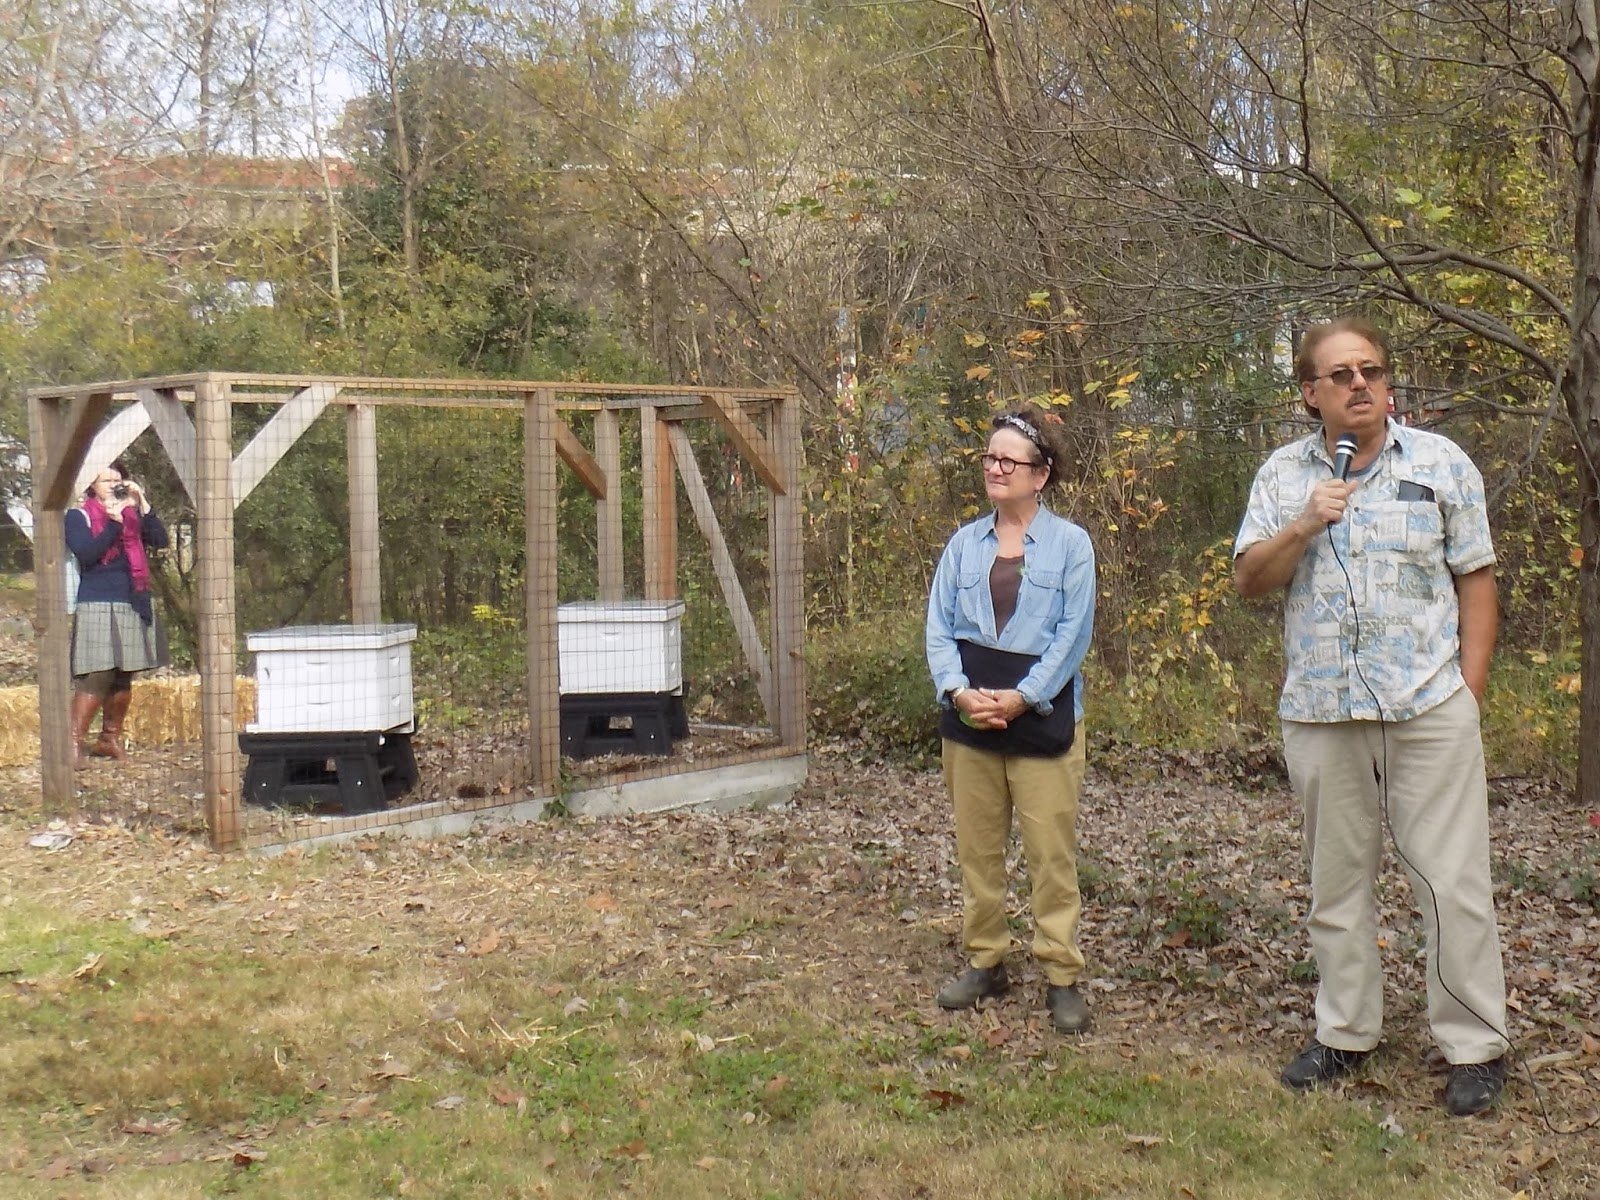 Linda39s Bees Piedmont Park Opens An Apiary